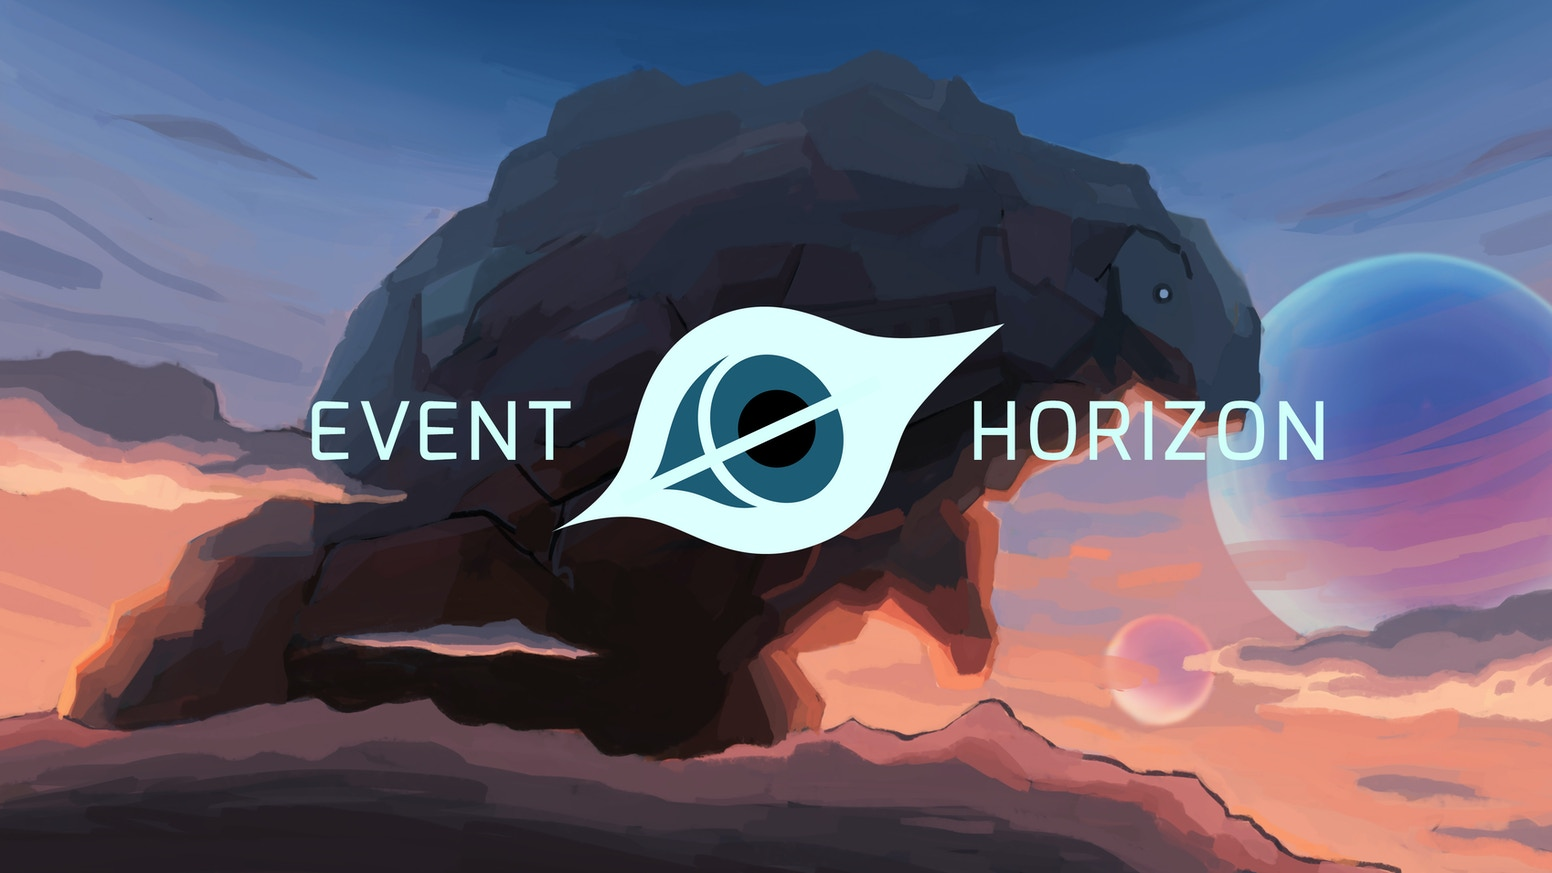 A galaxy on the edge of chaos. A new colony on a strange planet. Welcome to Event Horizon, a live action role play coming April 2017.